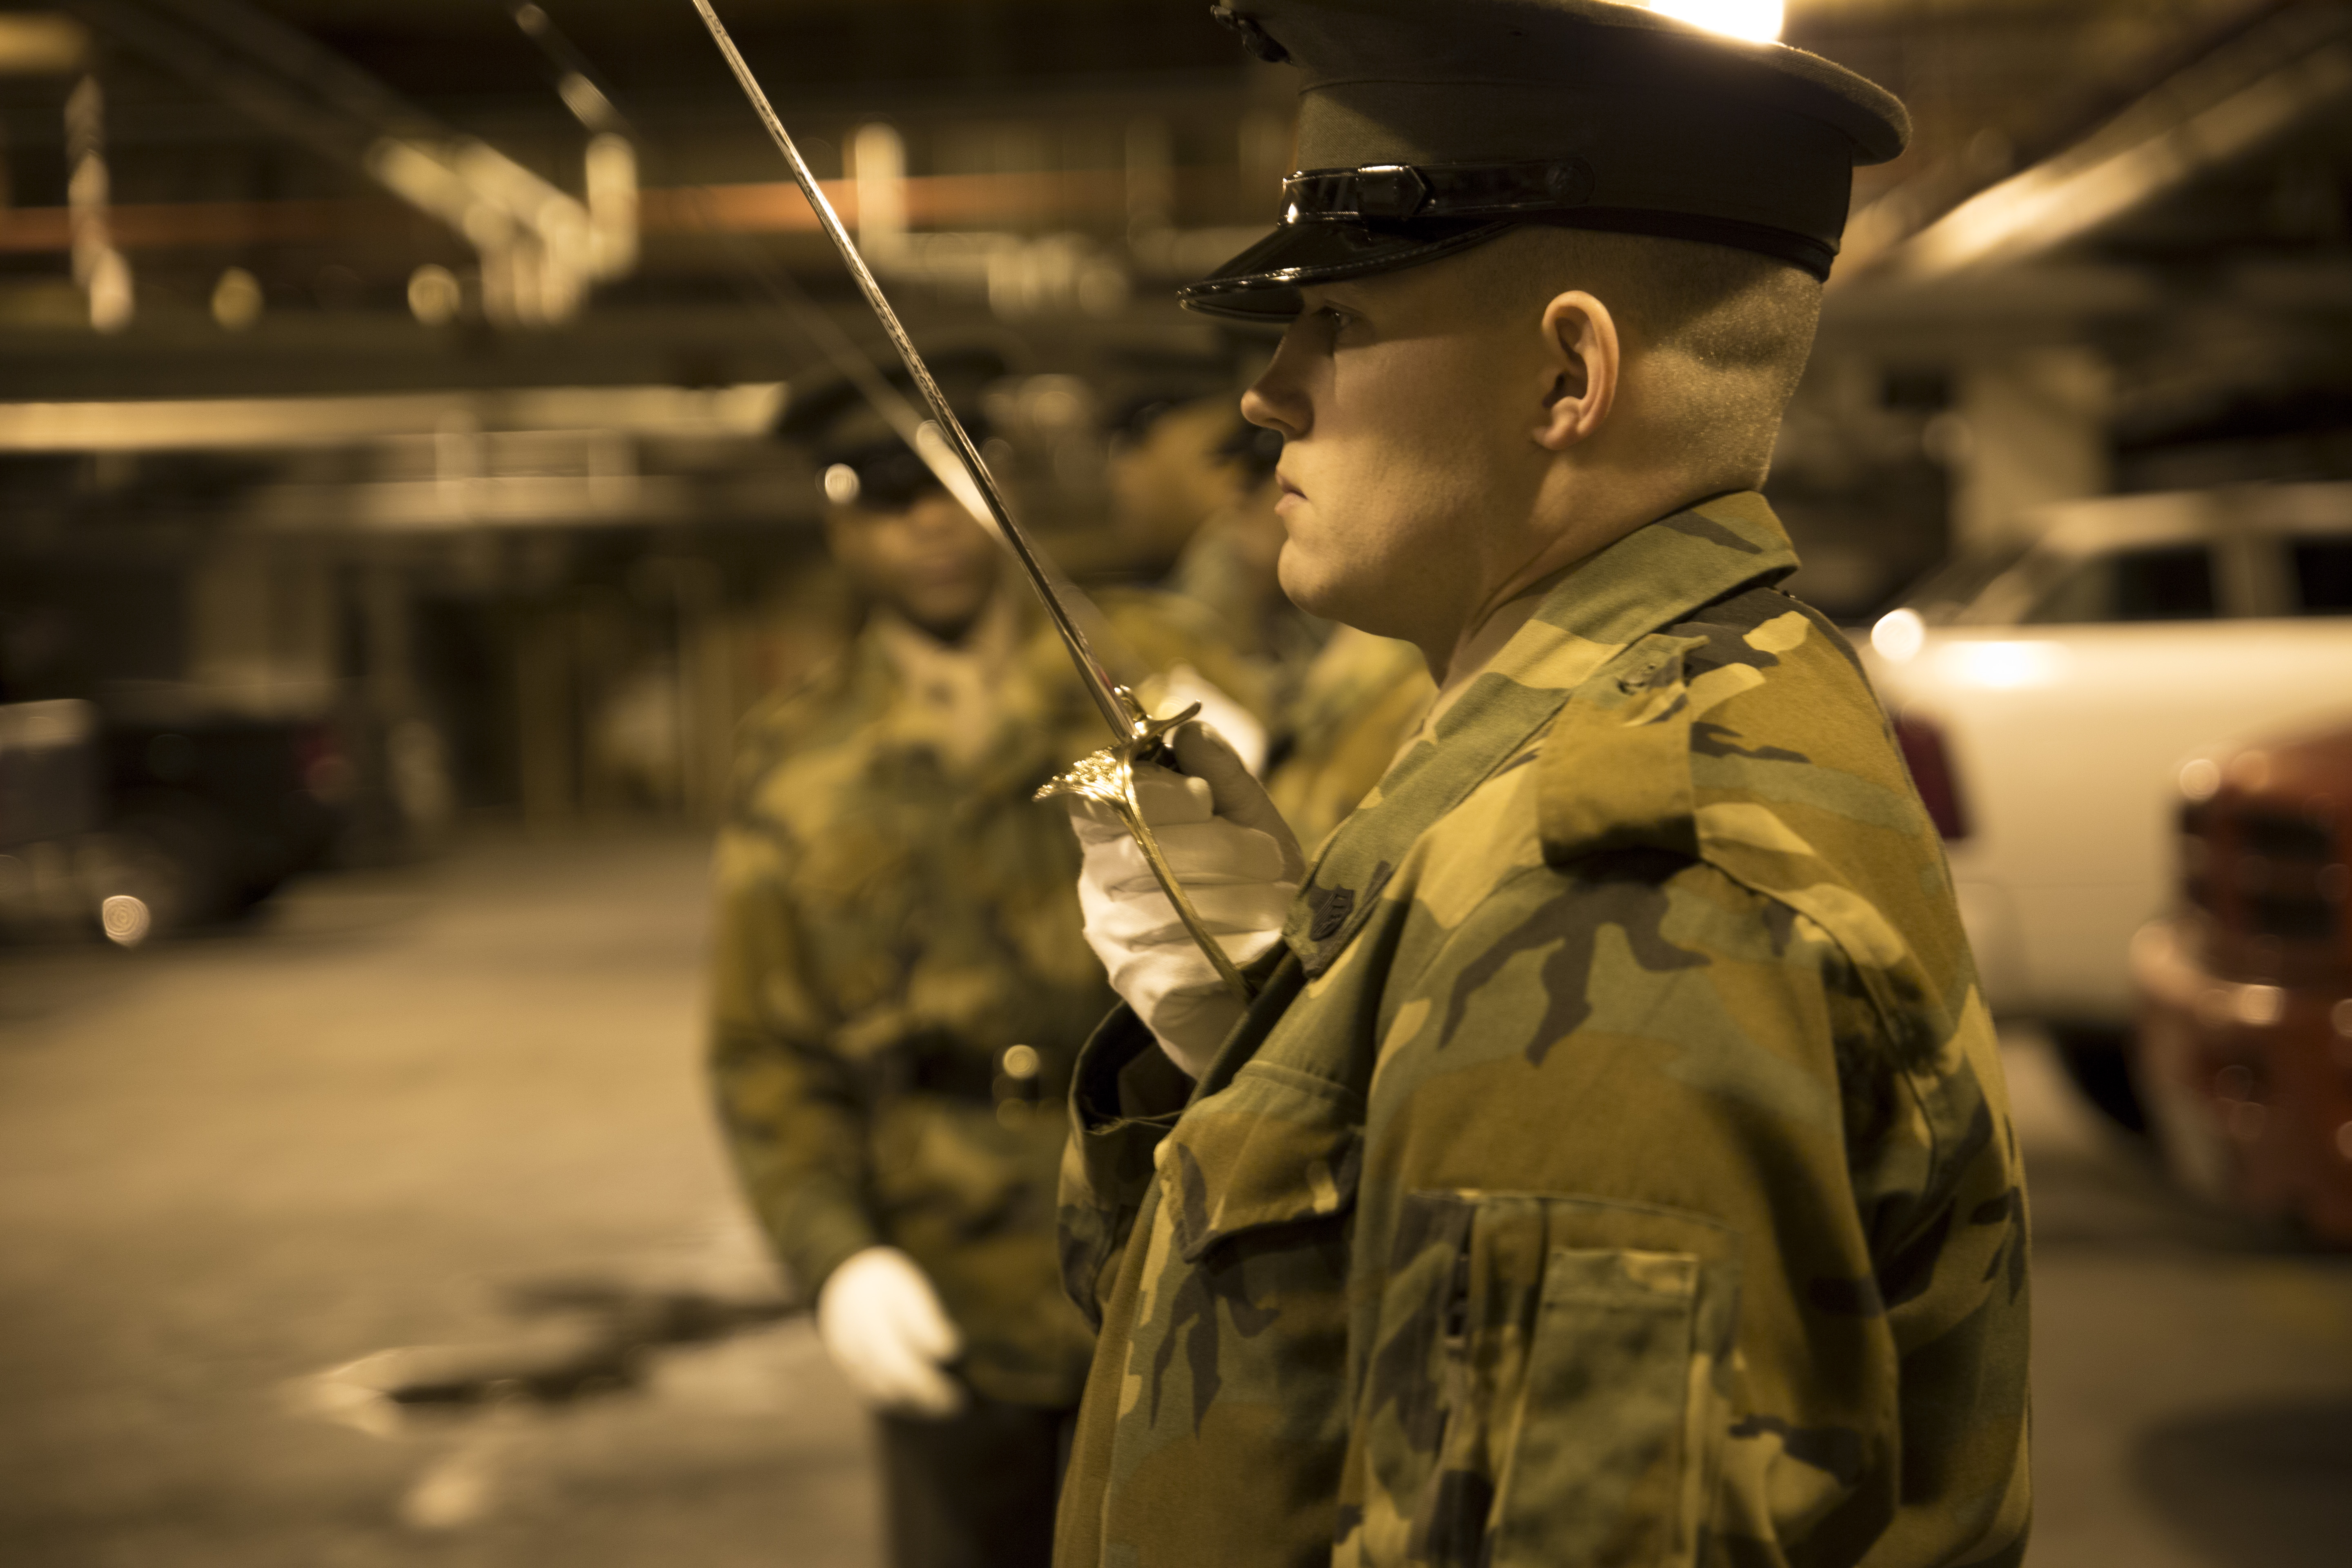 Download Hi-Res Photo Download Share Photo Details Details. United States  Marines practice sword manual during Ceremonial Drill ...